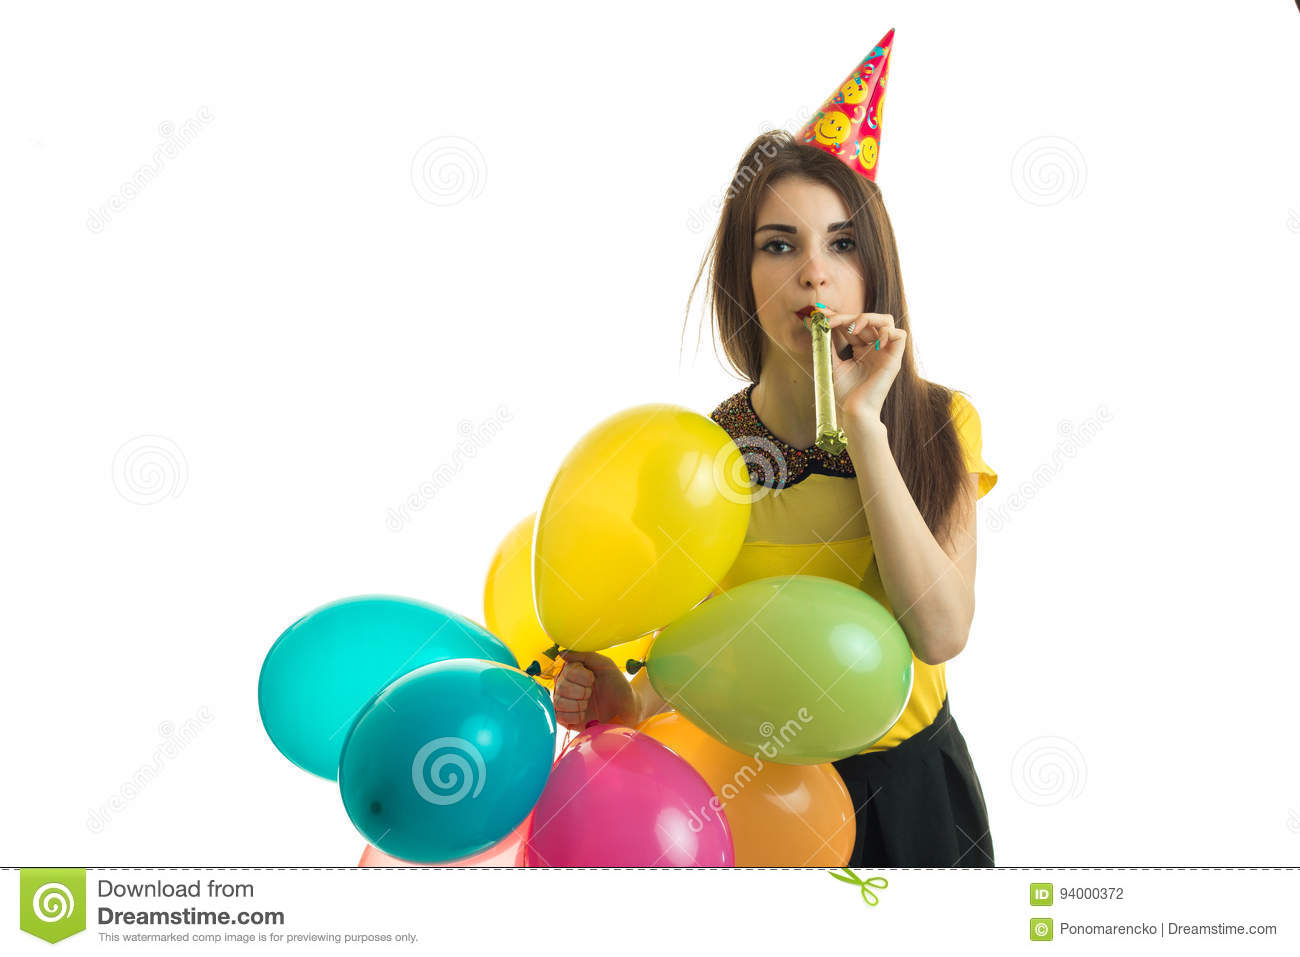 Young Stylish Girl Blowing Horn With Balloons In Her Hands On Birthday Party